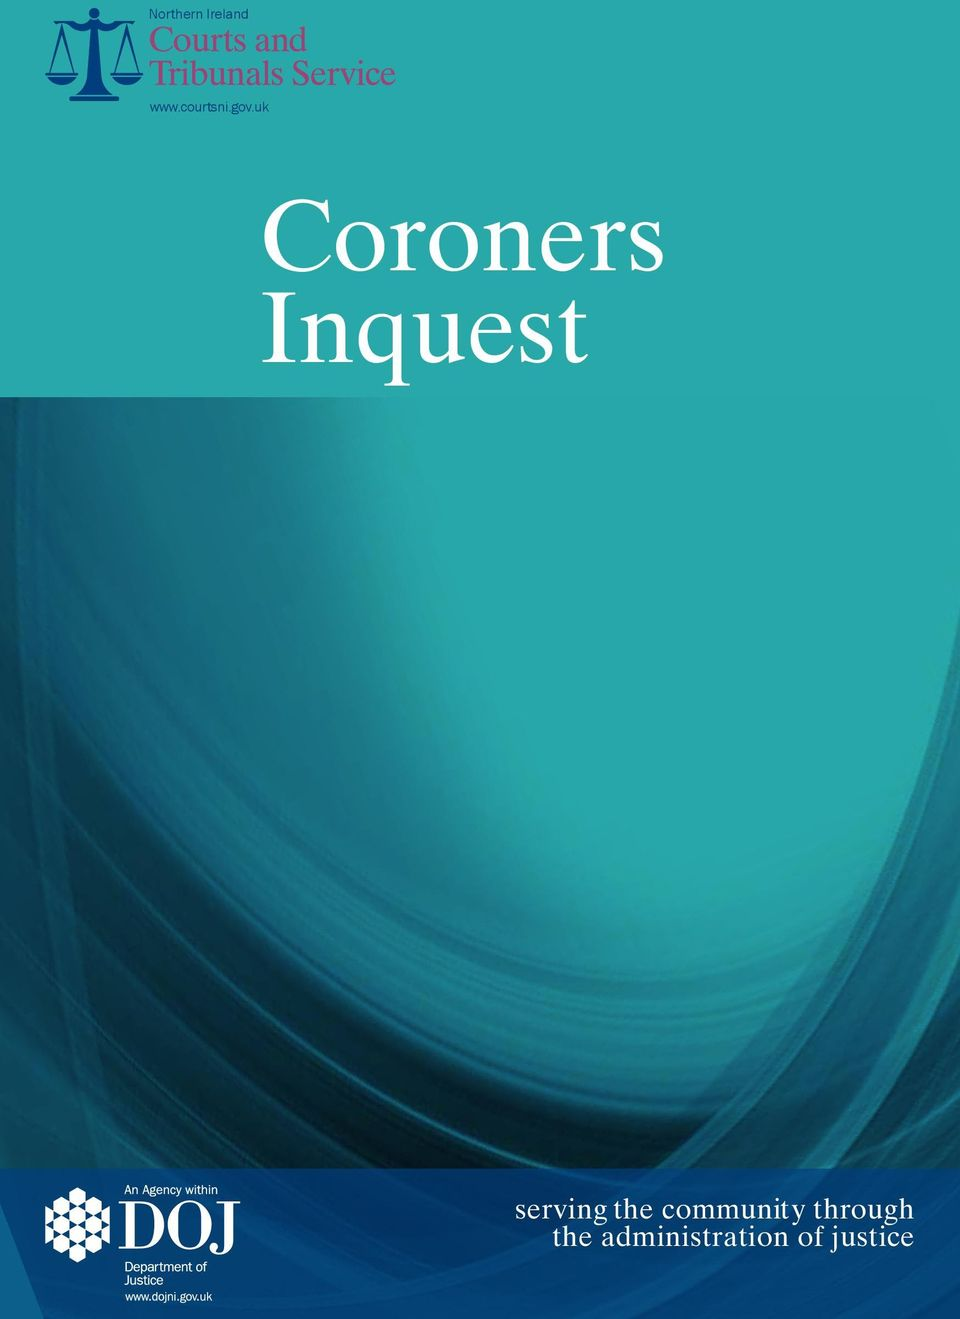 uk Coroners Inquest serving